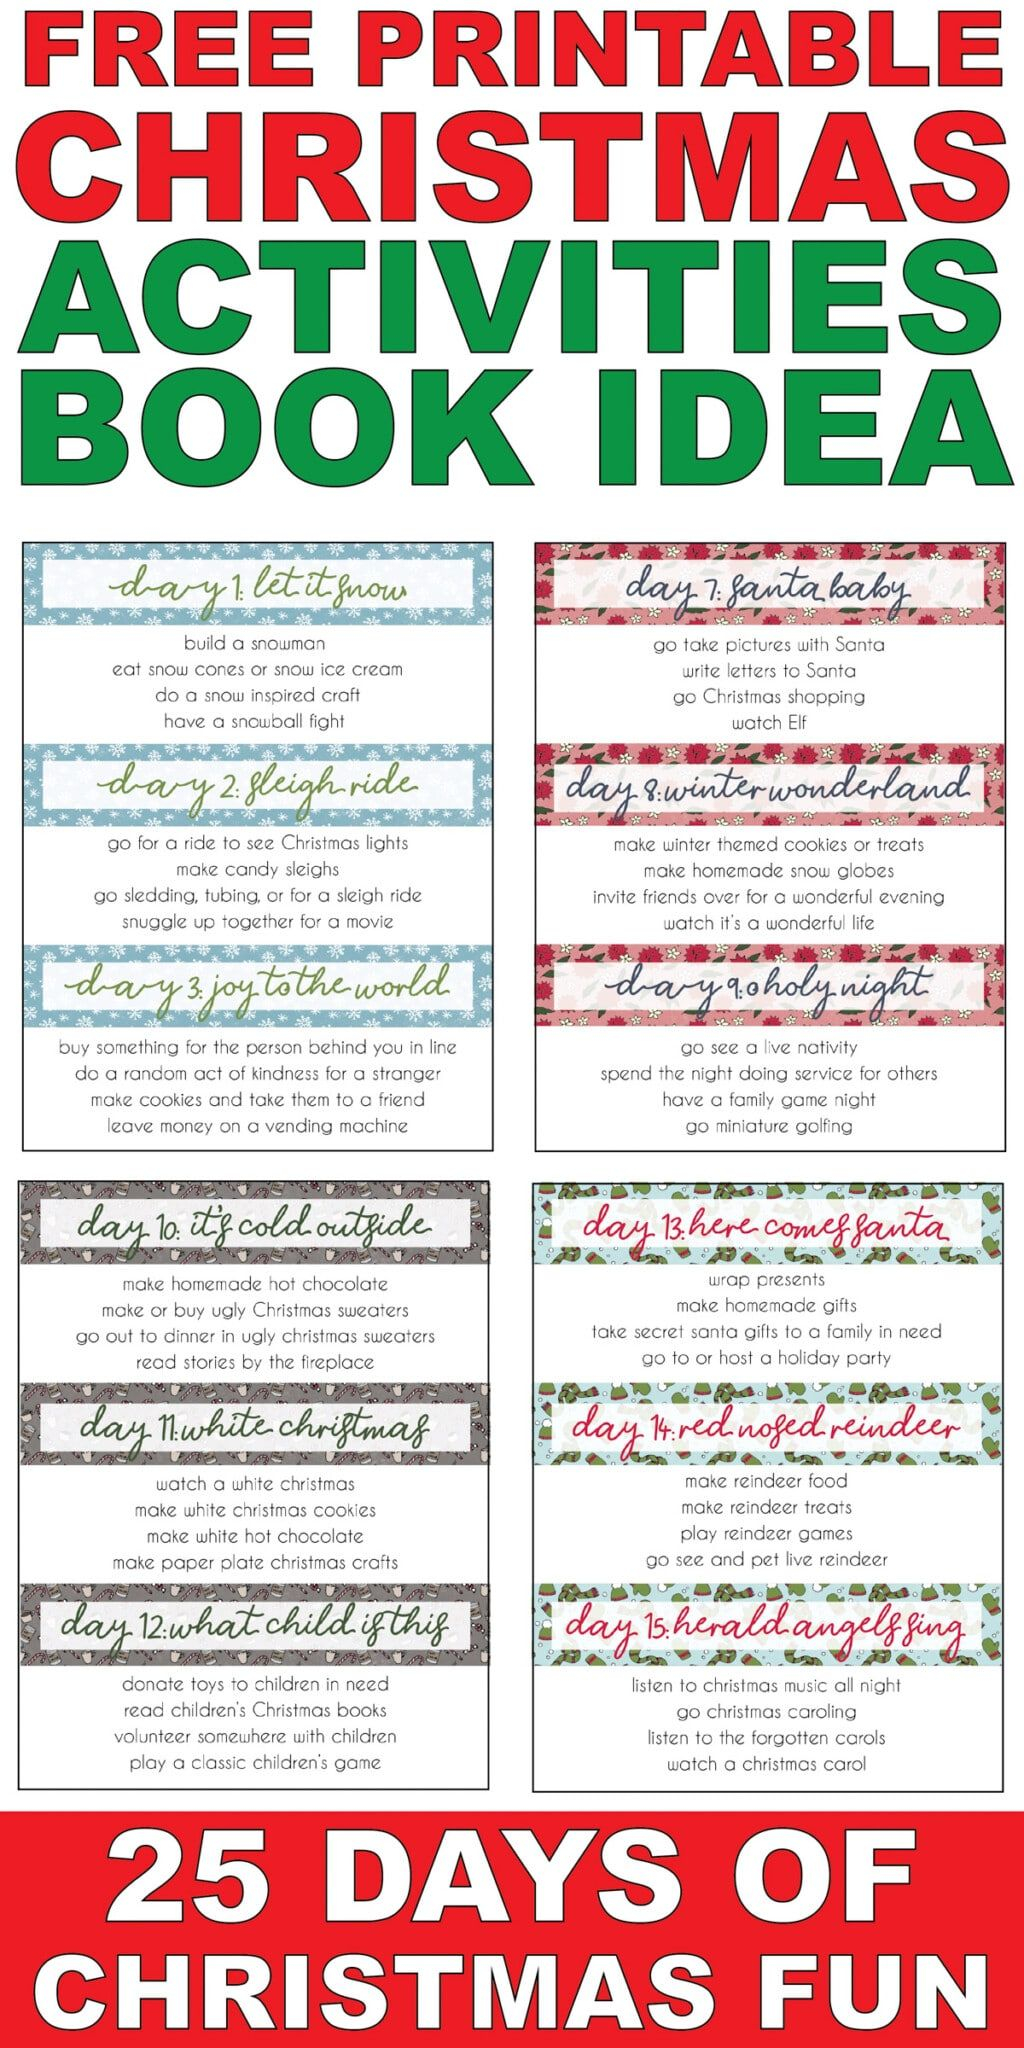 Free Printable 25 Days of Christmas Activities Book (100+